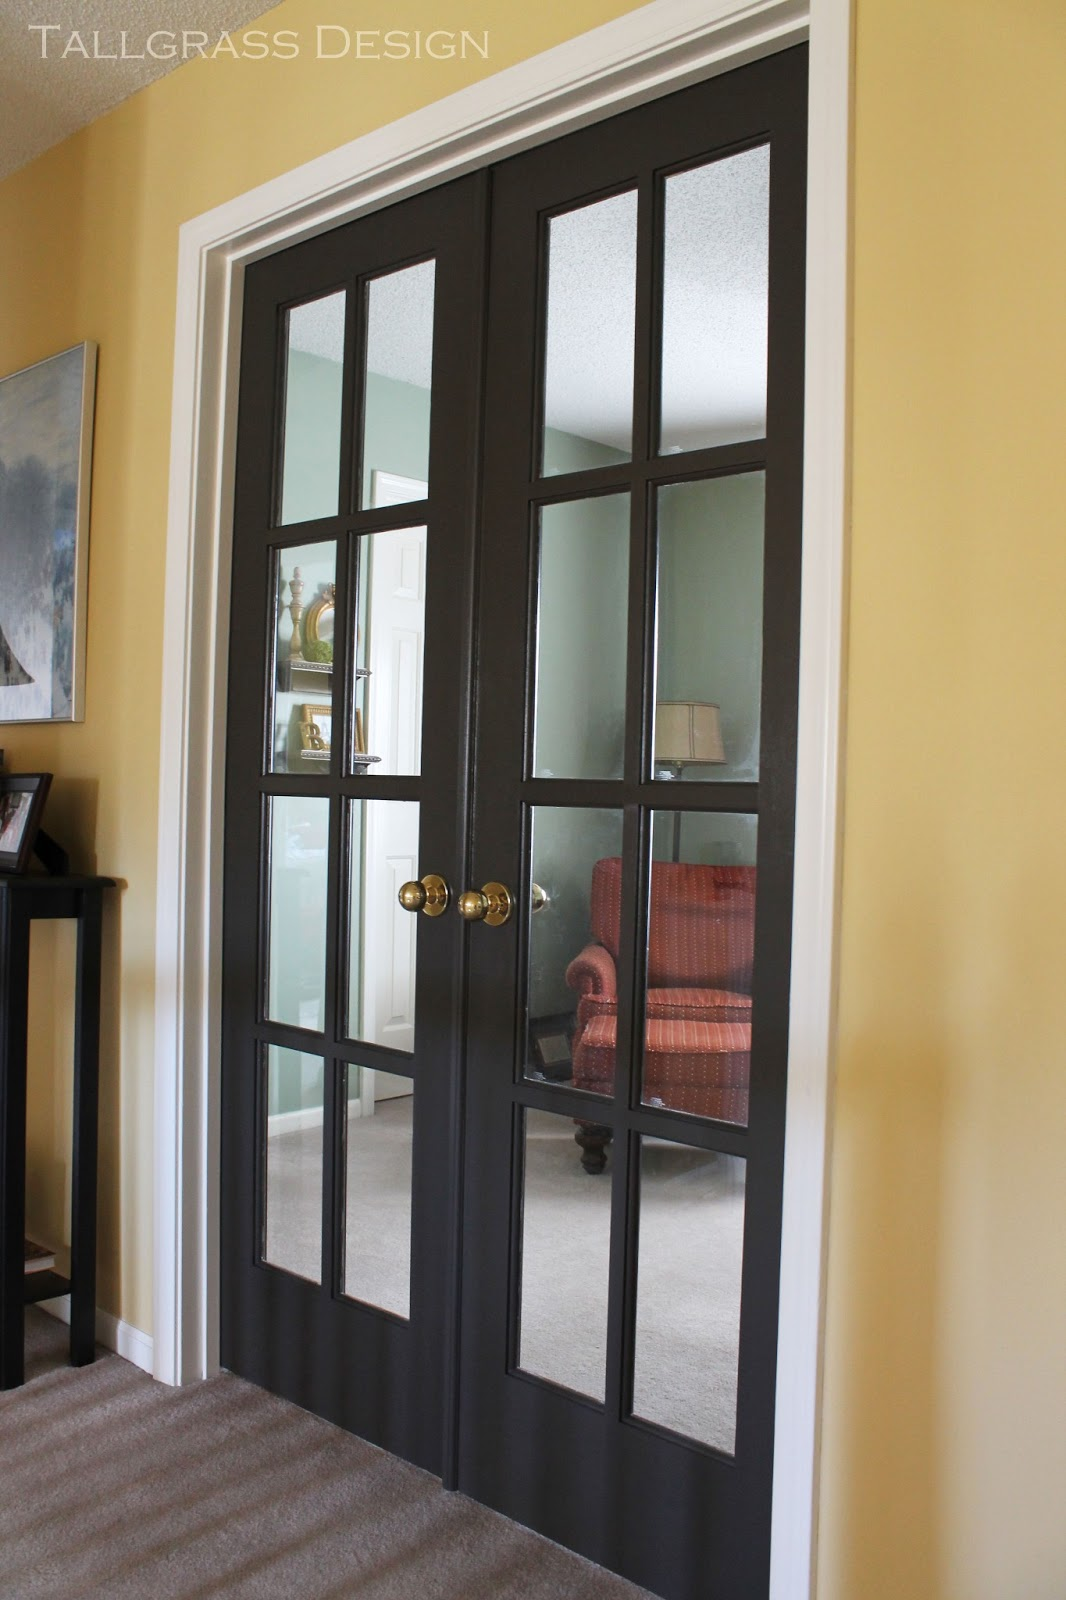 Tallgrass design adventures with french doors for All glass french doors